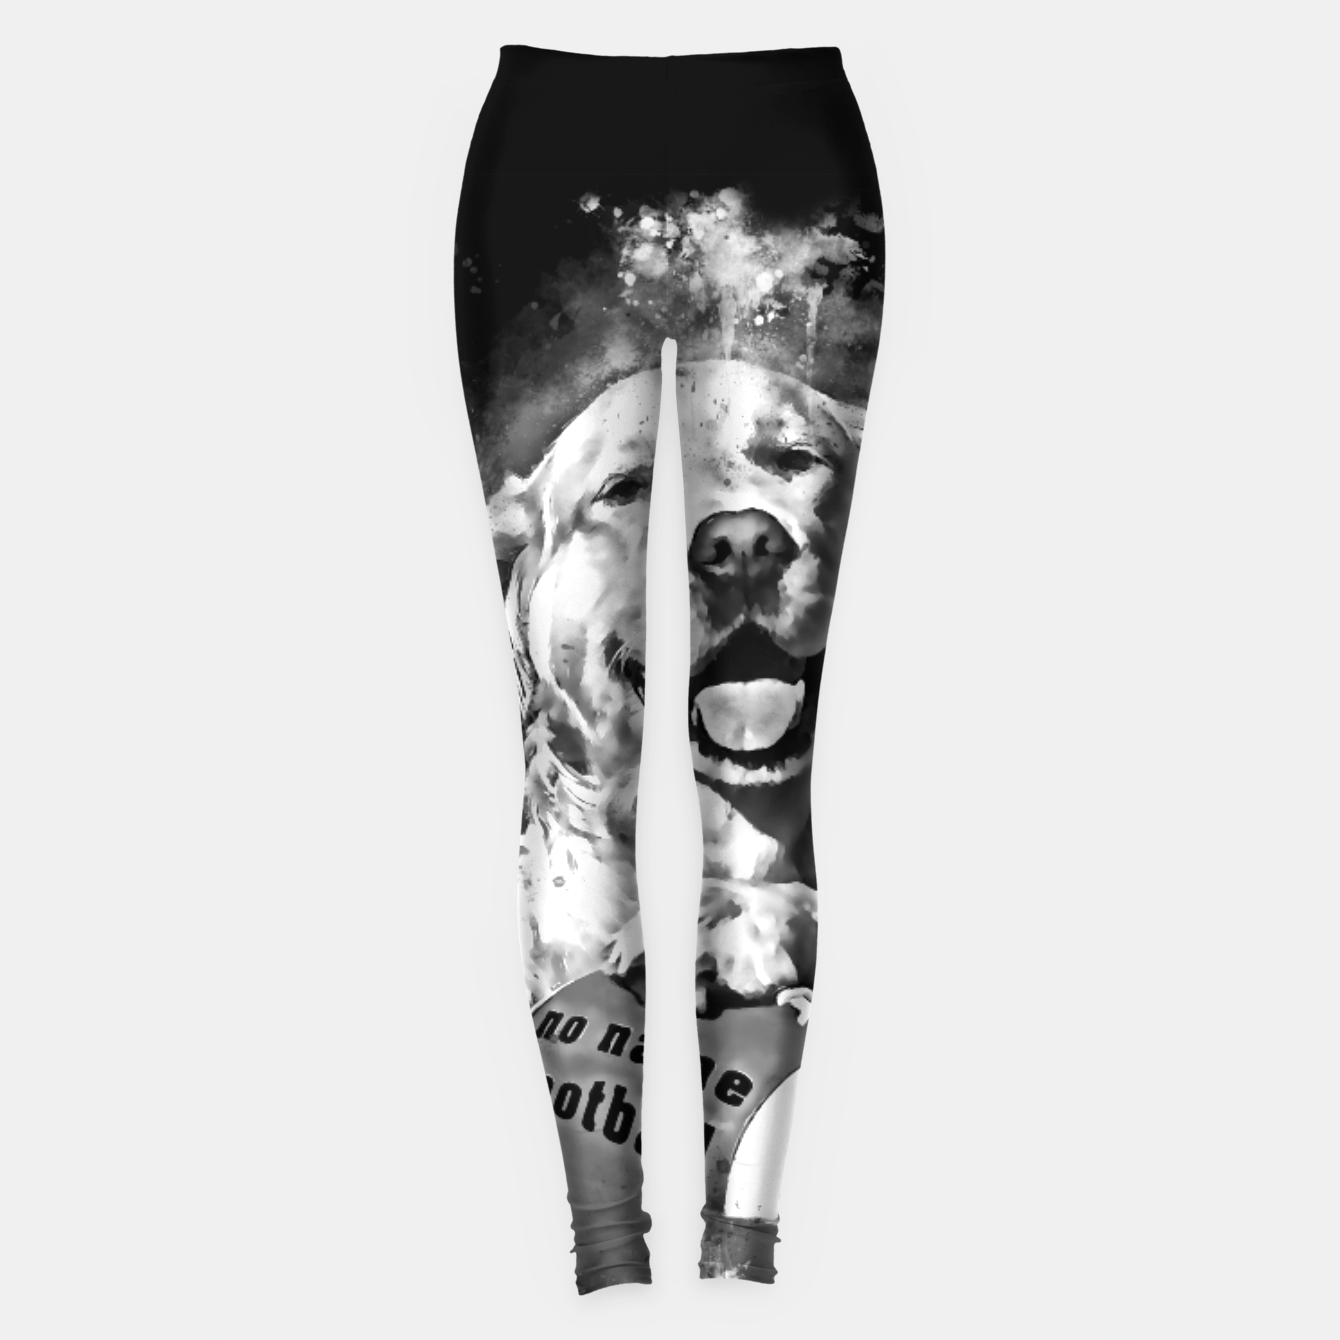 64d62b6d04e5a Image of gxp golden retriever dog hund football splatter watercolor  wasserfarbe spritzer schwarz weiß Leggings -